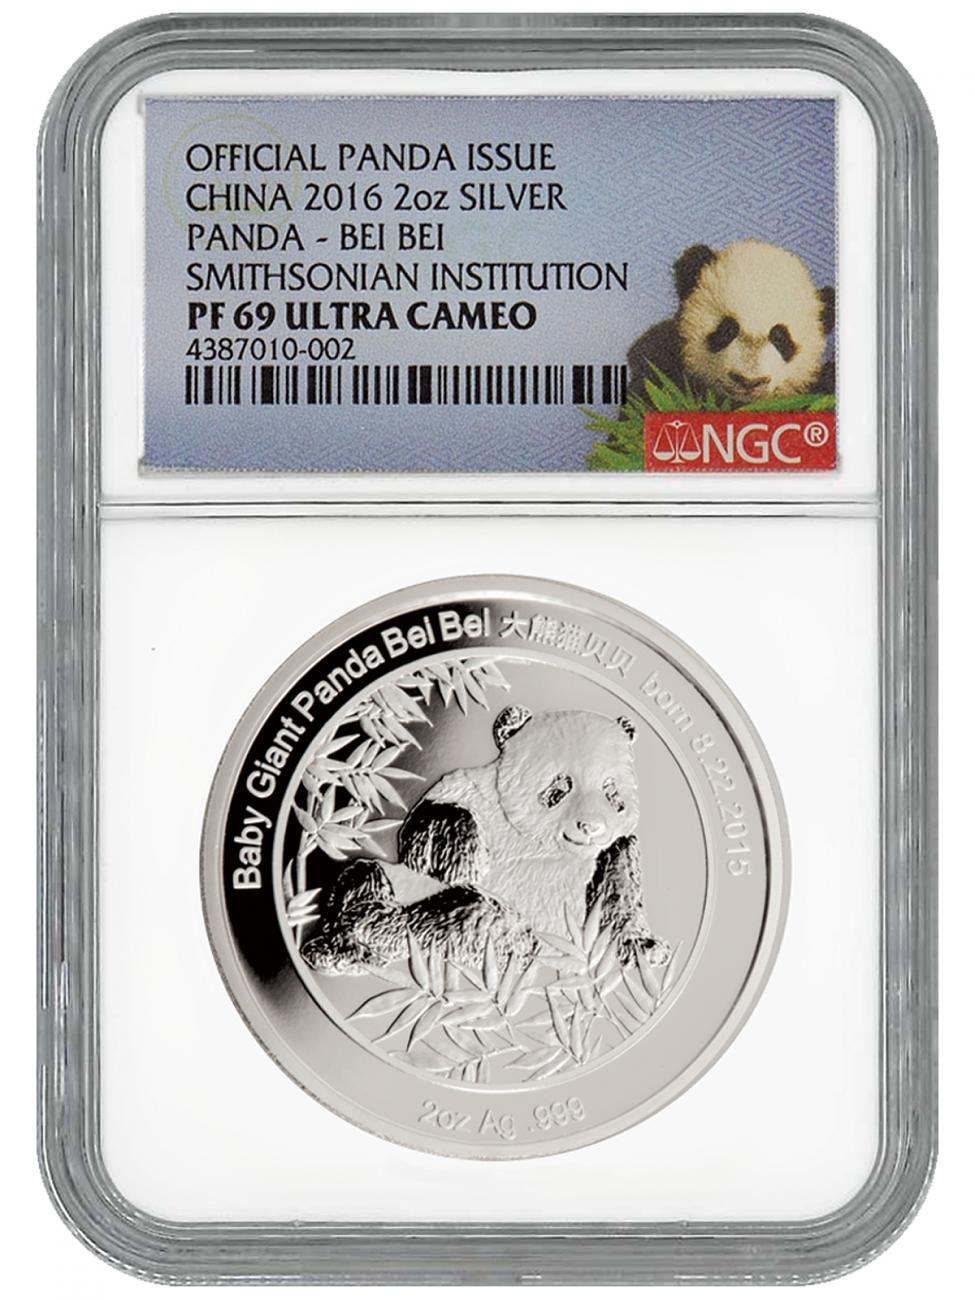 2016 China Bei Bei Smithsonian Institution Official Mint Medal 2 oz Silver Proof Medal NGC PF69 UC